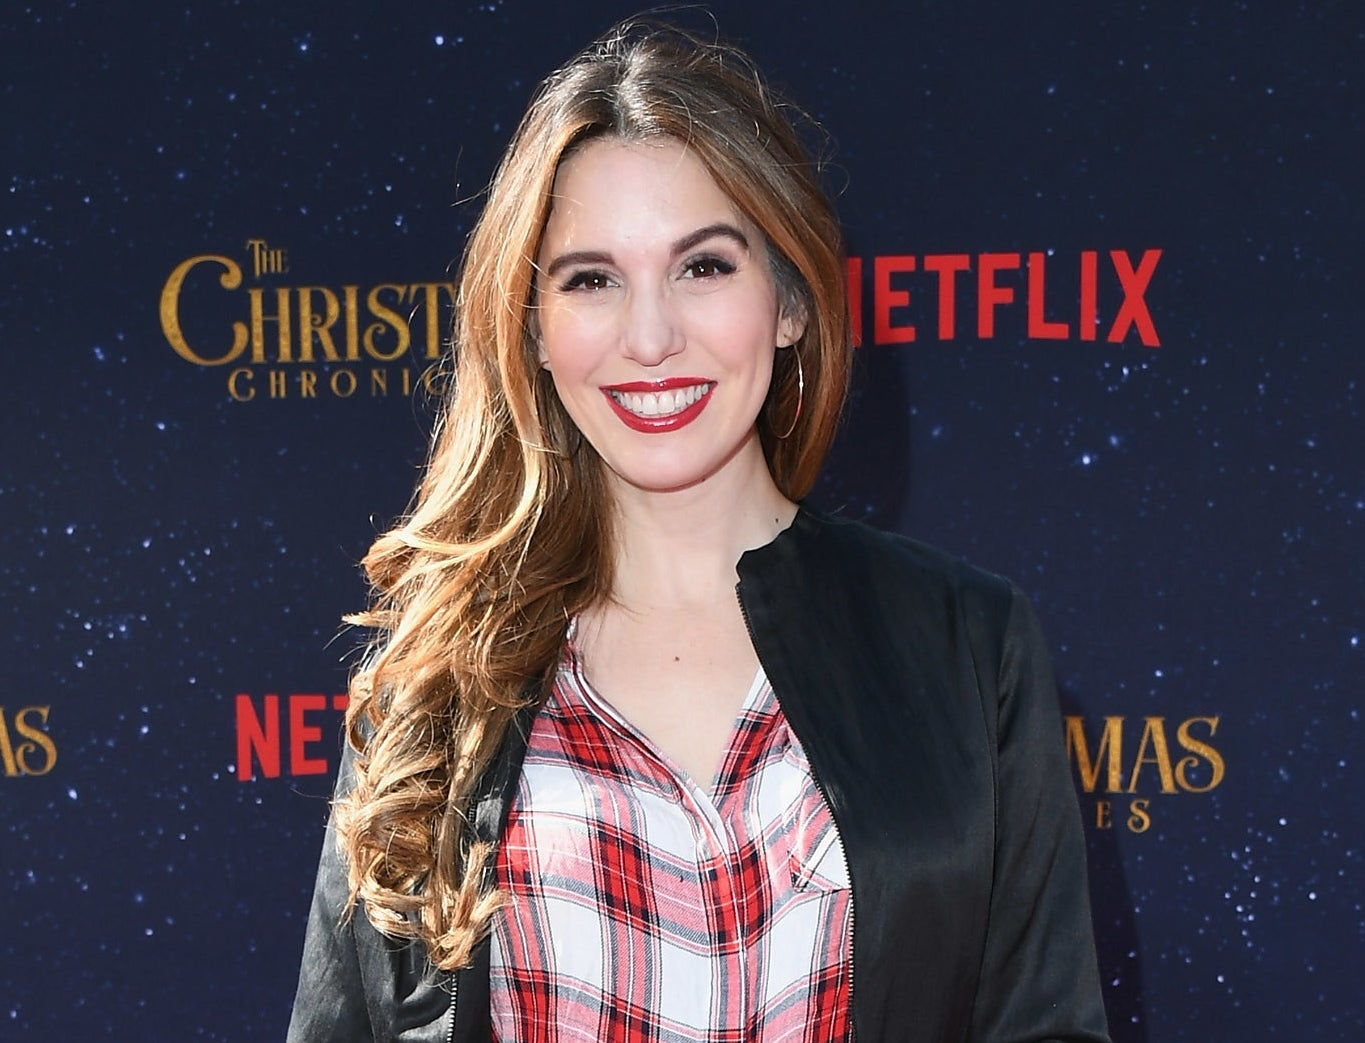 Christy wears a red and white plaid shirt and black jacket